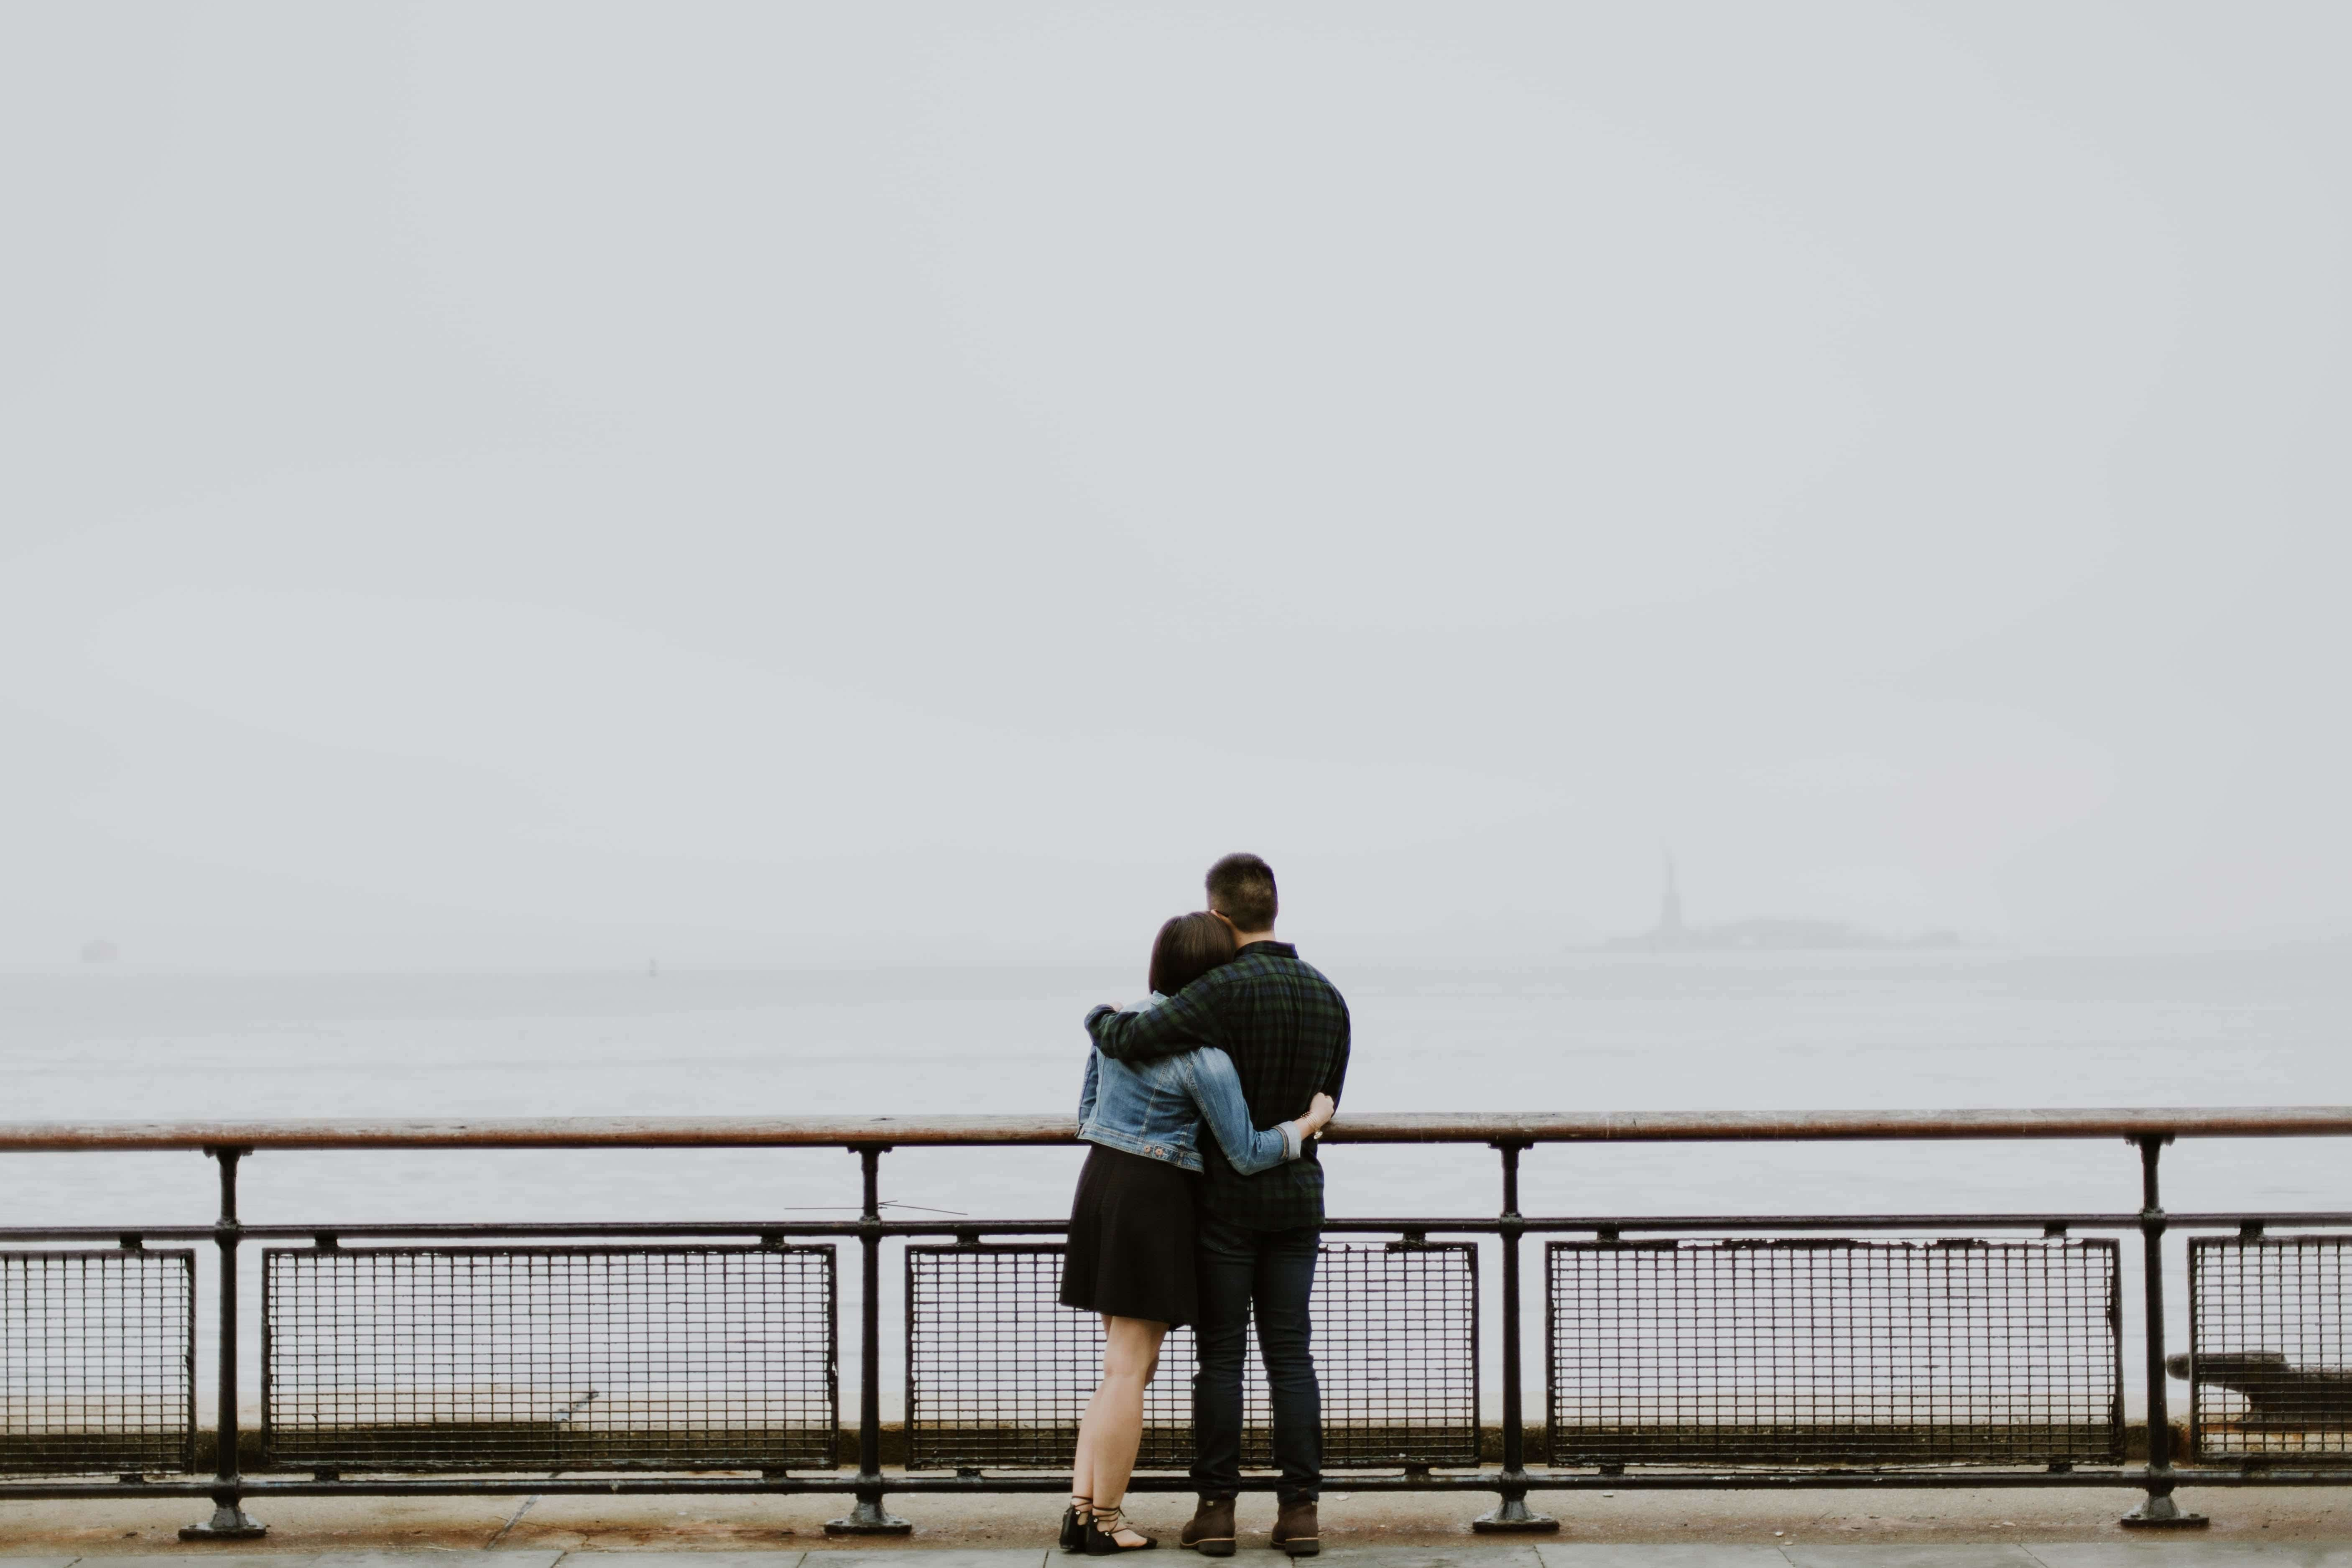 Couple holding each other, standing at railing overlooking water; image by Elizabeth Tsung, via Unsplash.com.